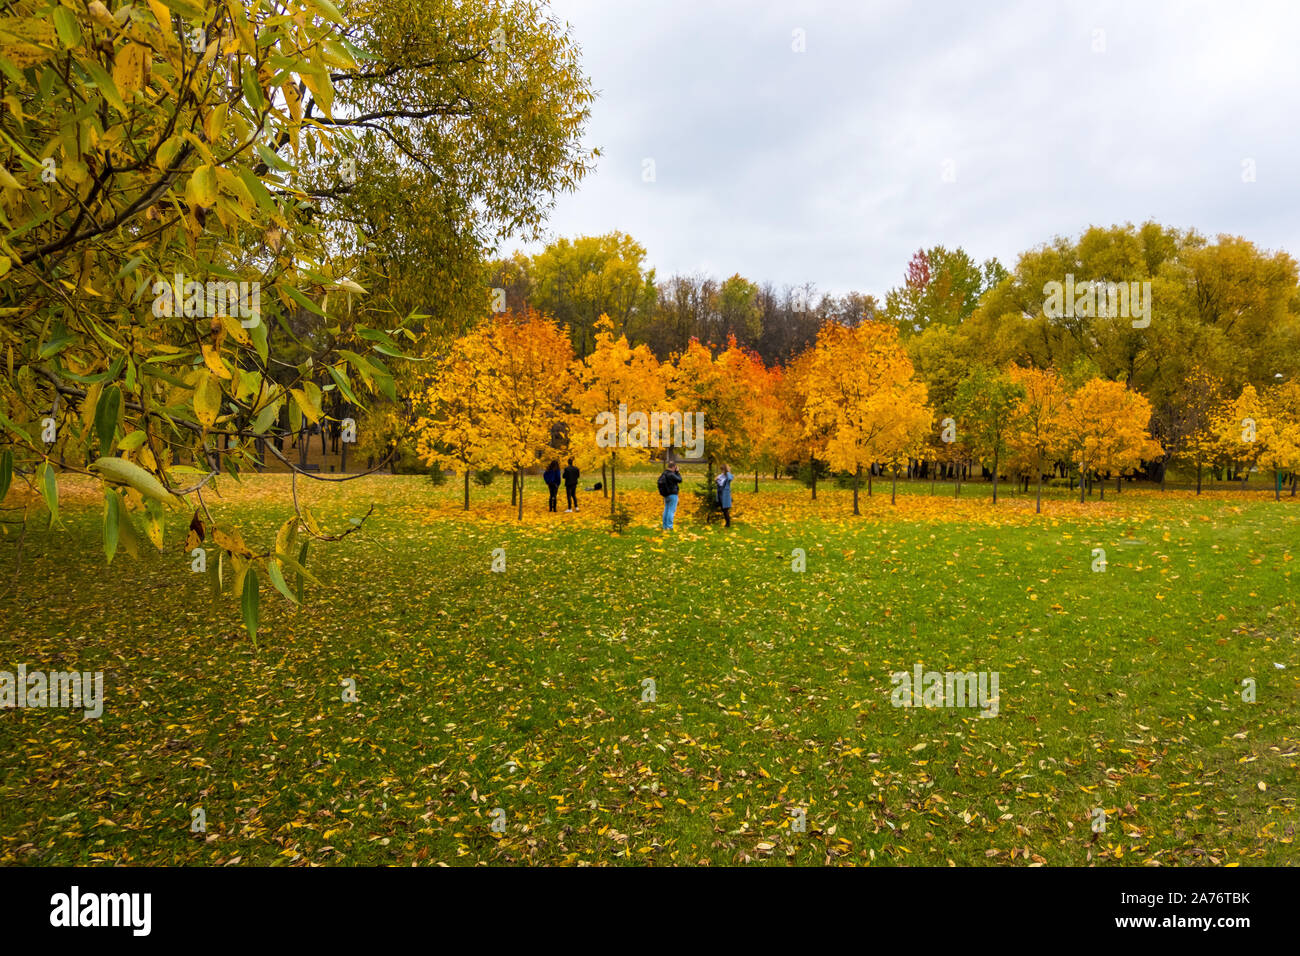 Scenic view of the city park with multicolored fall foliage in downtown Minsk, Belarus Stock Photo